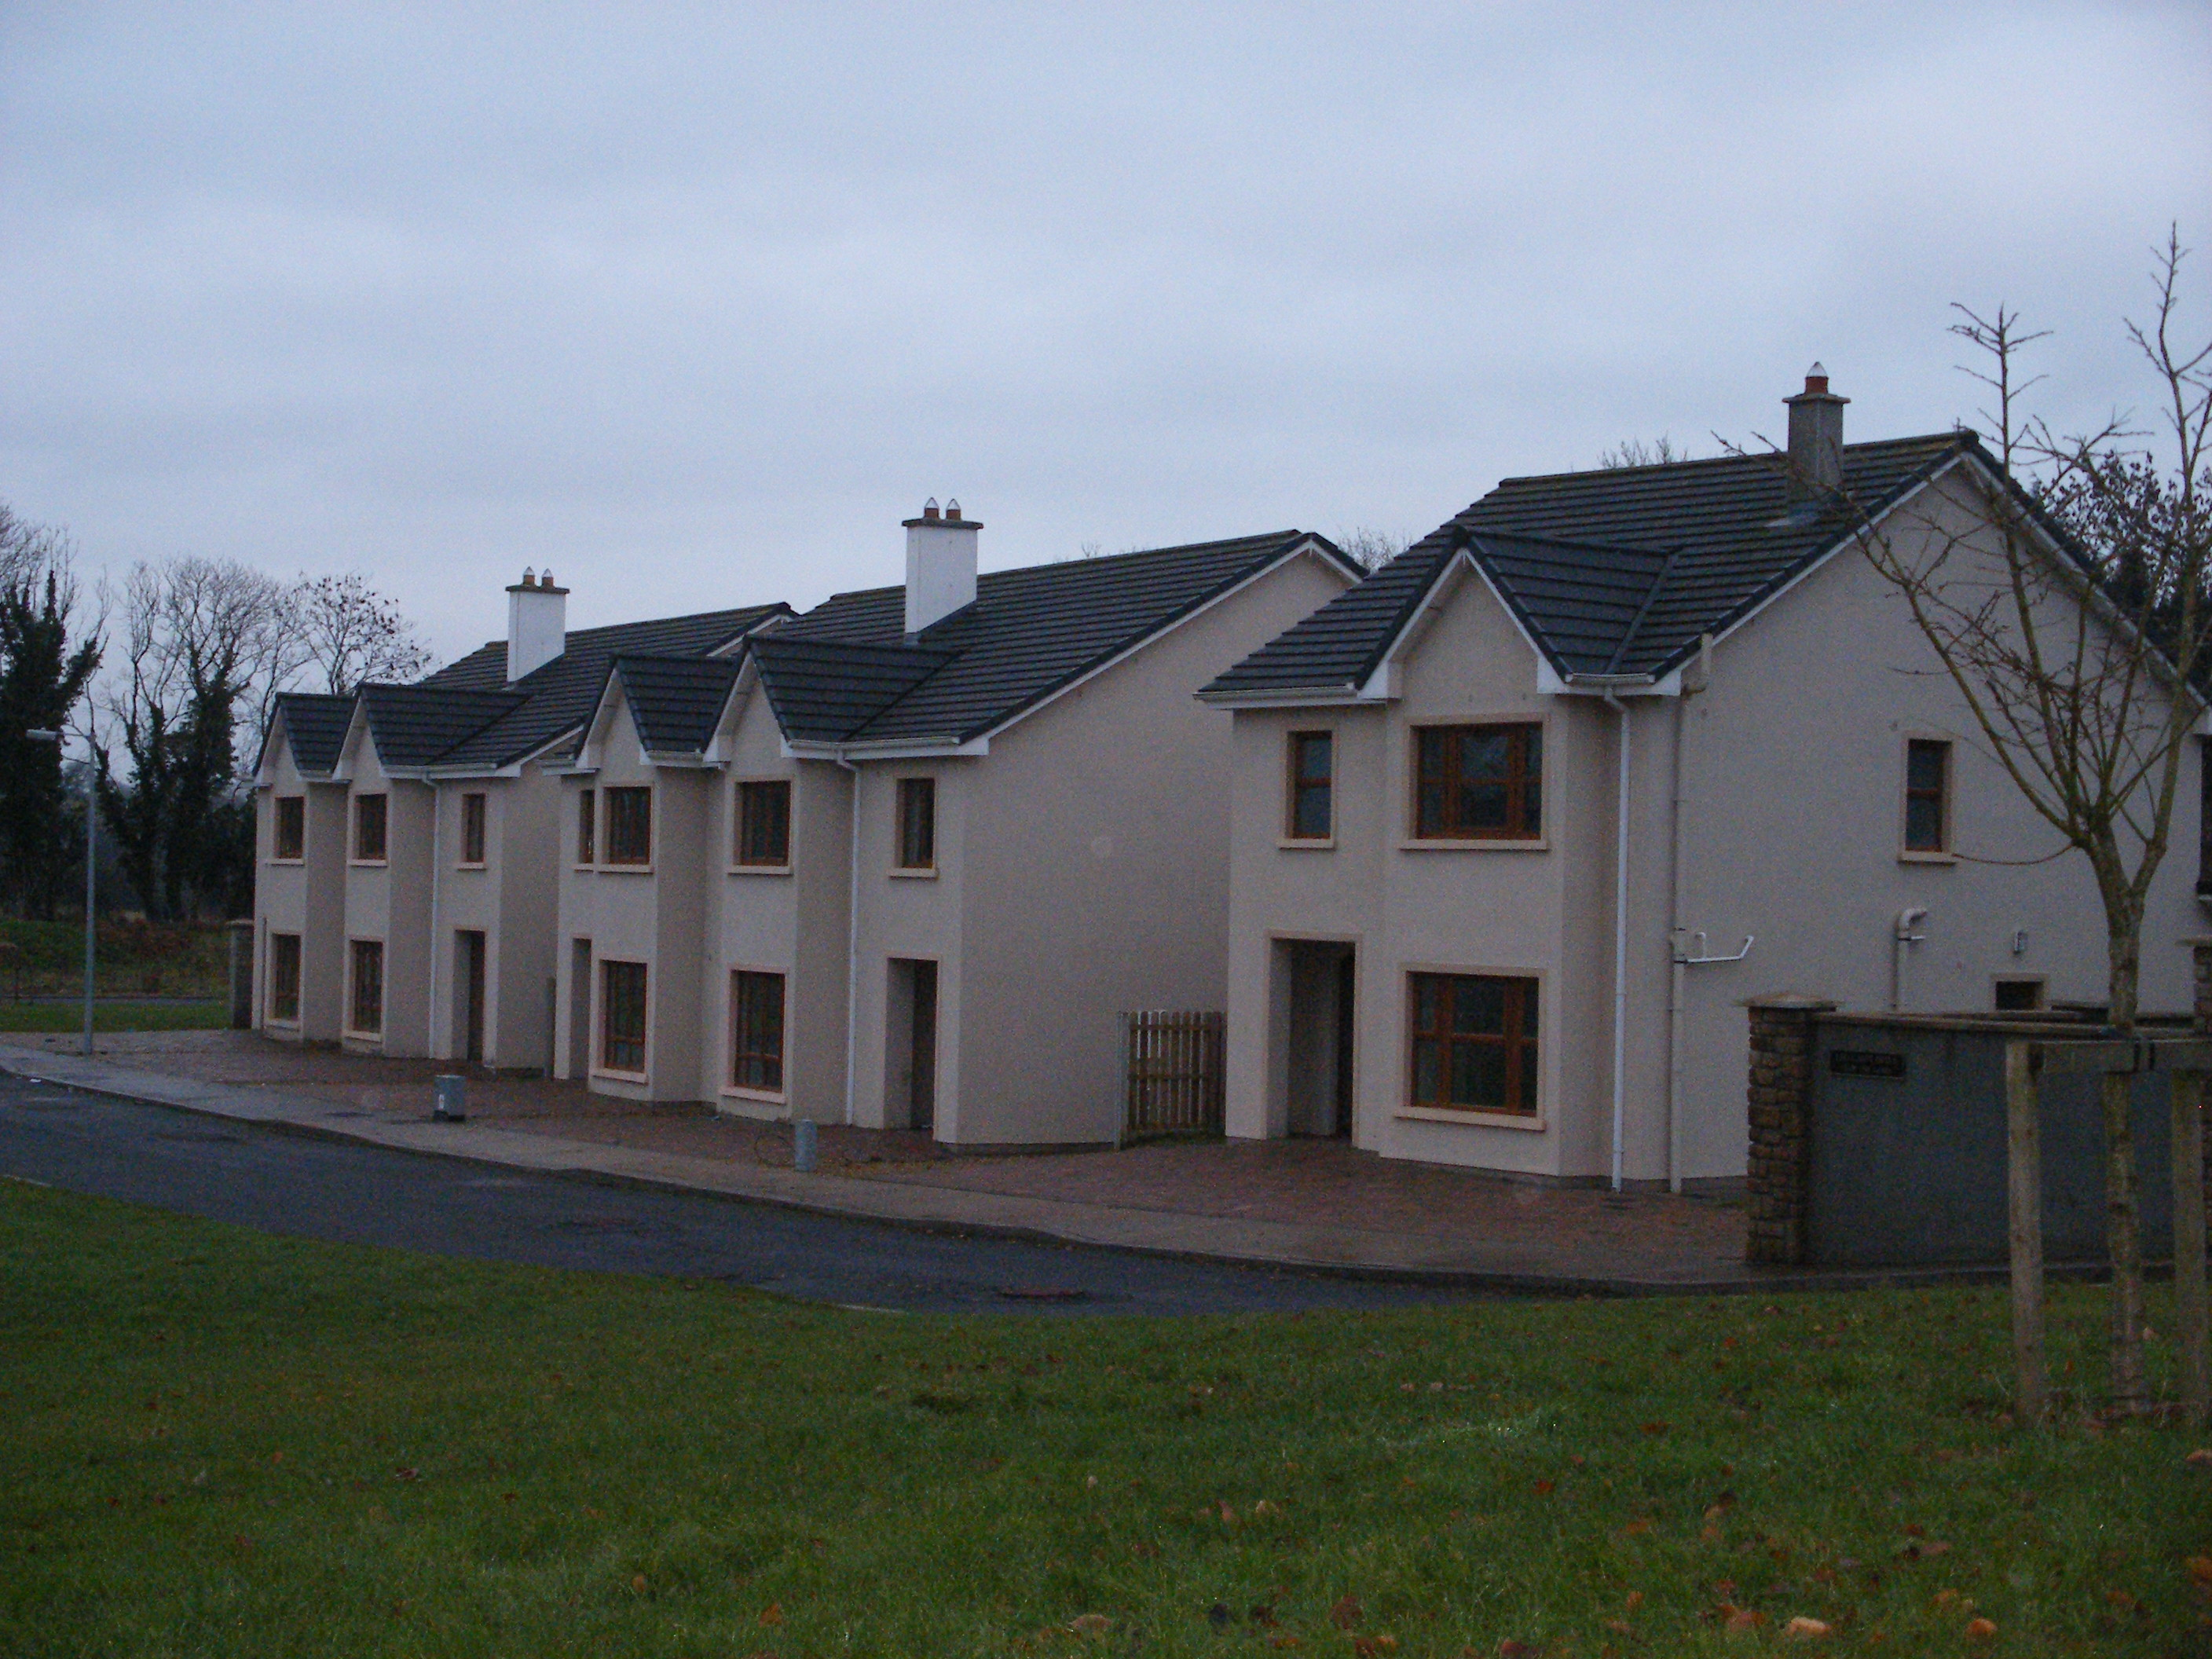 Irish ghost housing estates what now the helpful engineer for Haunted apartments for rent